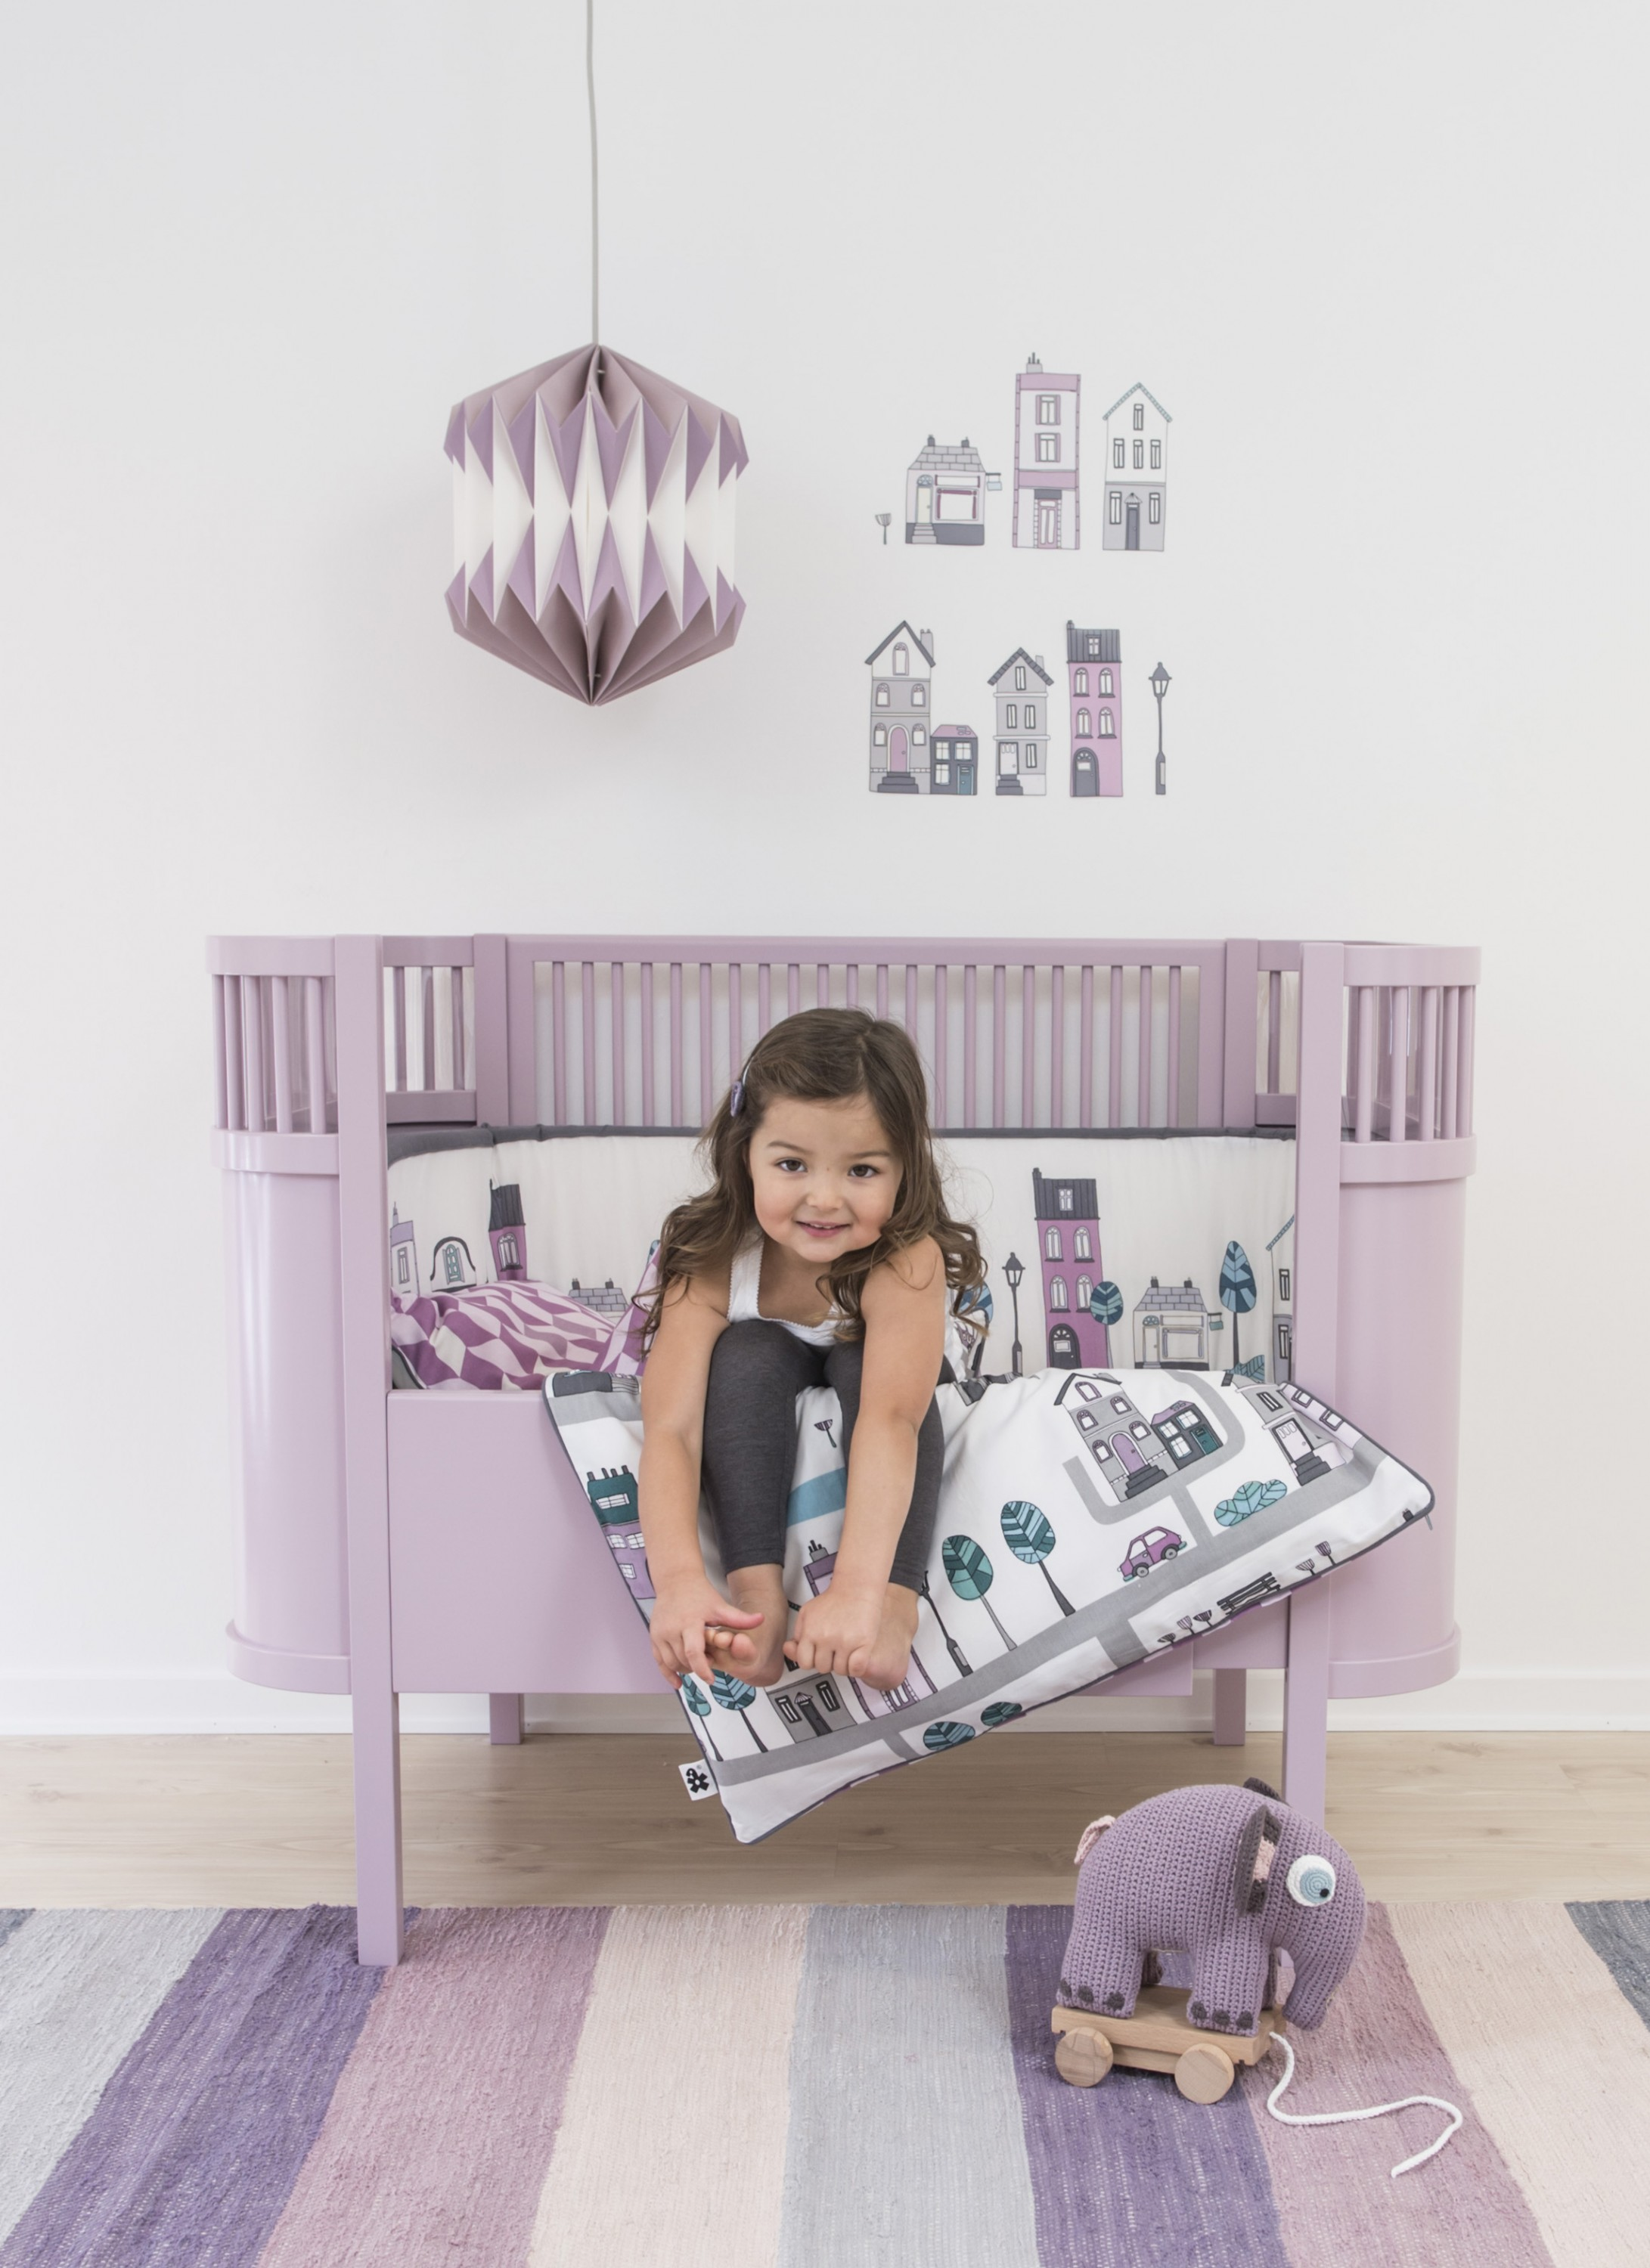 sebra babybett kili kinderbett baby birkenholz pastell lila ko 70x110 neu kaufen bei. Black Bedroom Furniture Sets. Home Design Ideas